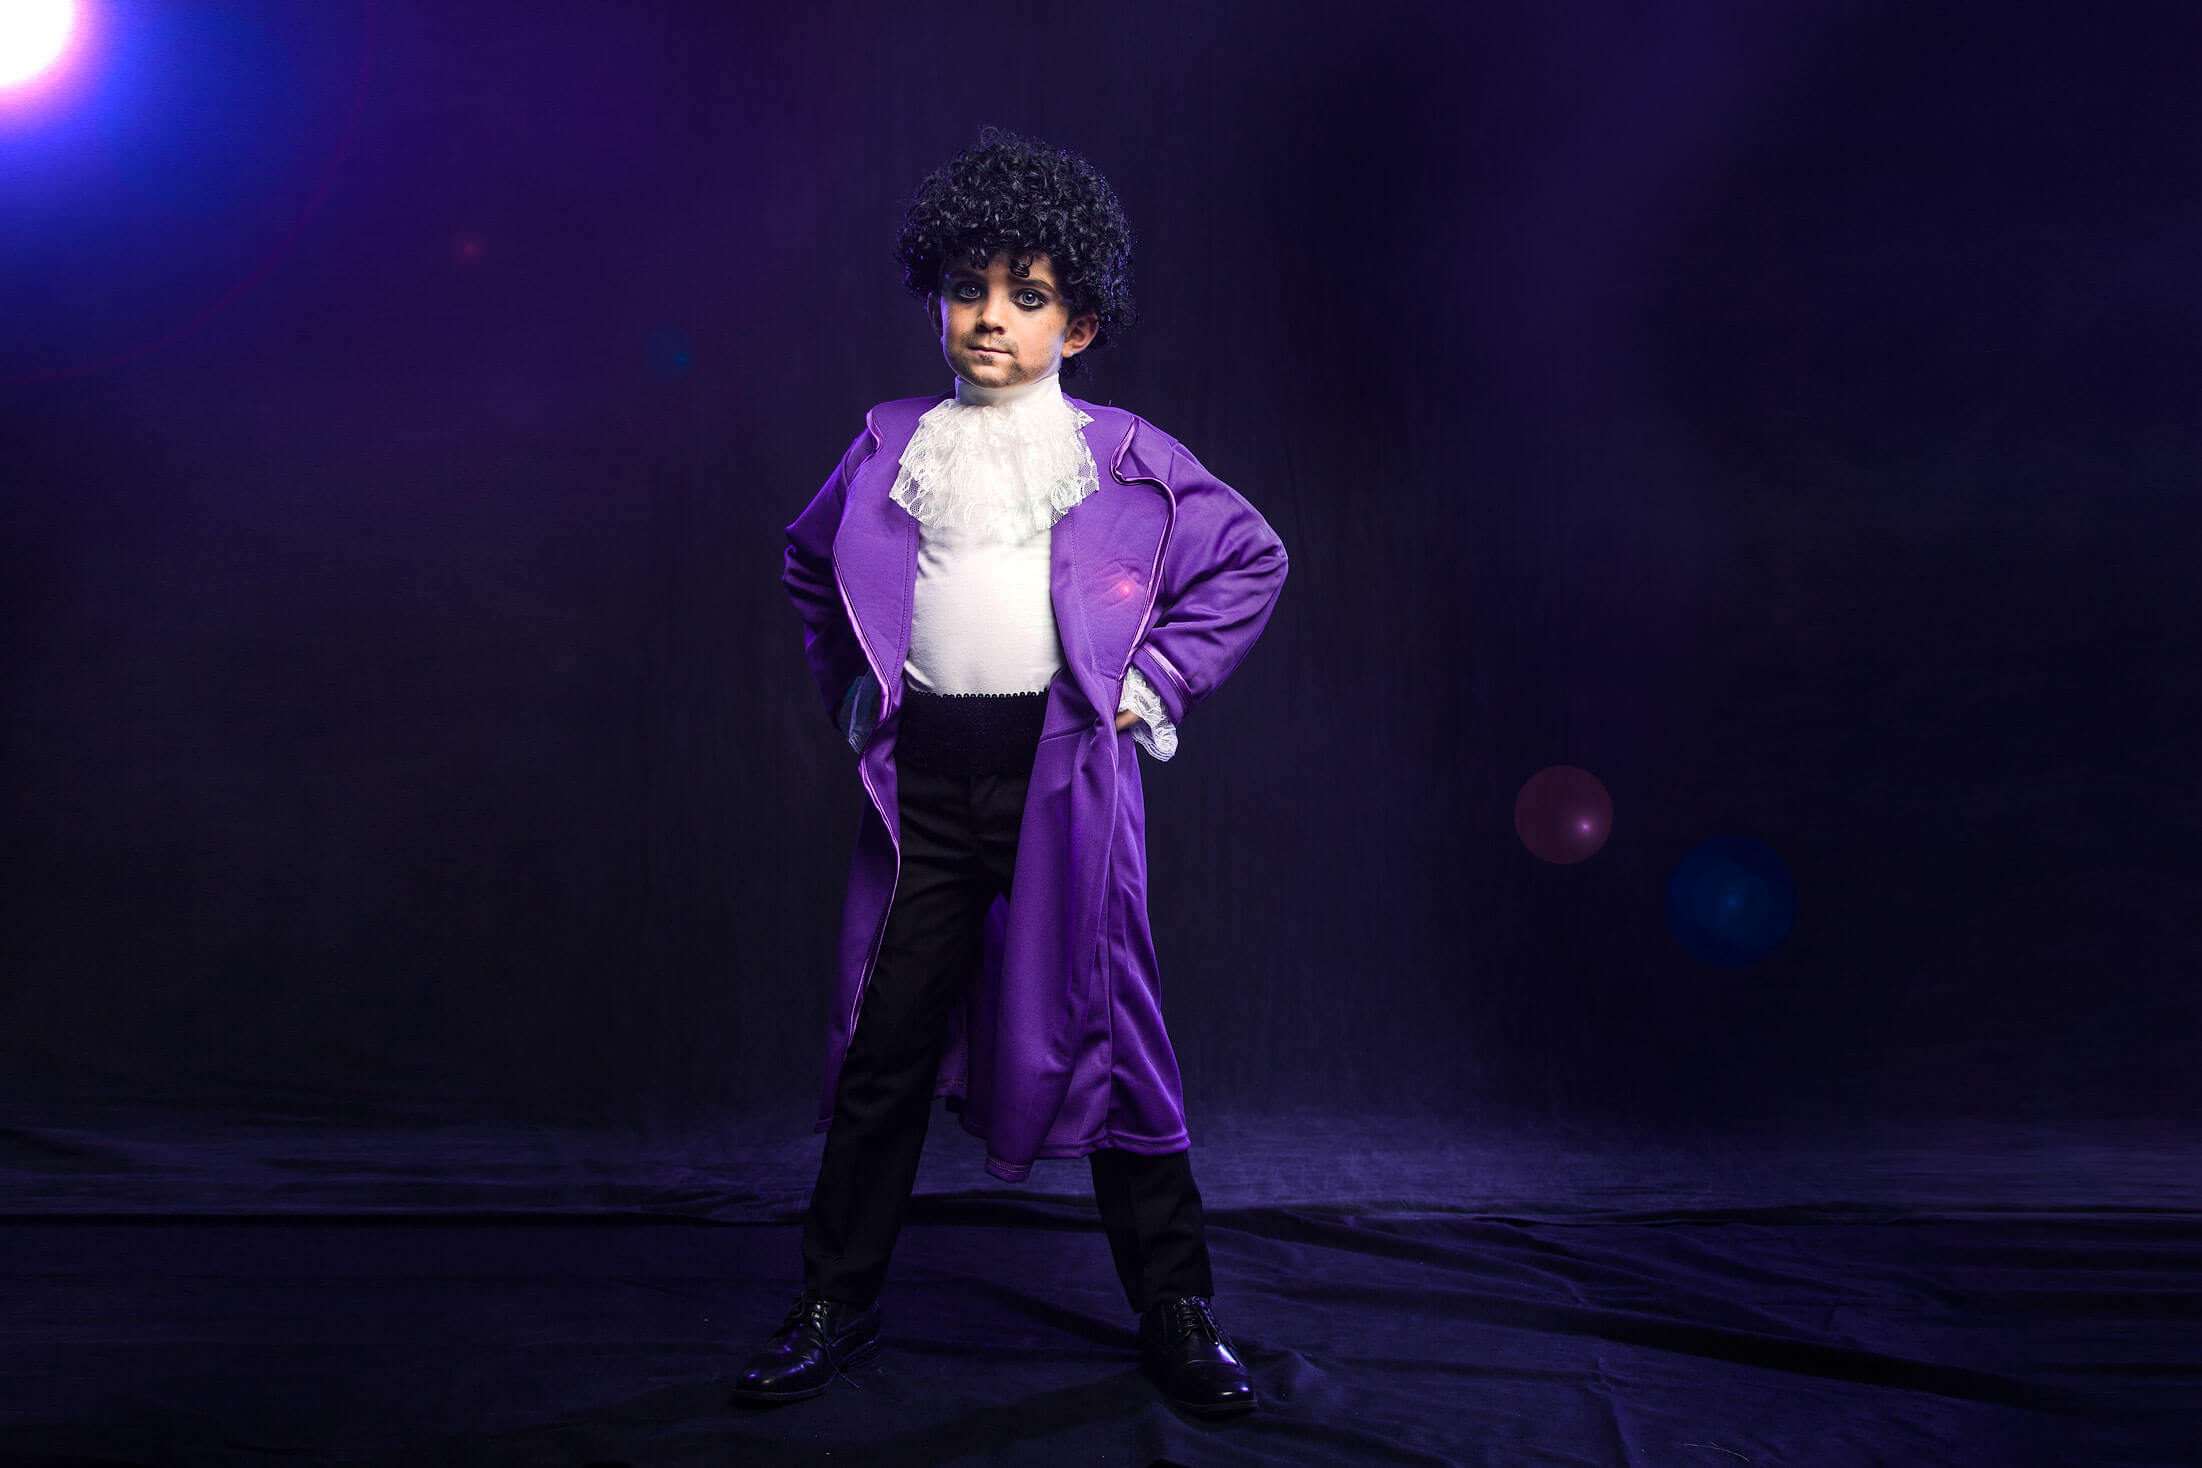 Prince Halloween Costume for Kids